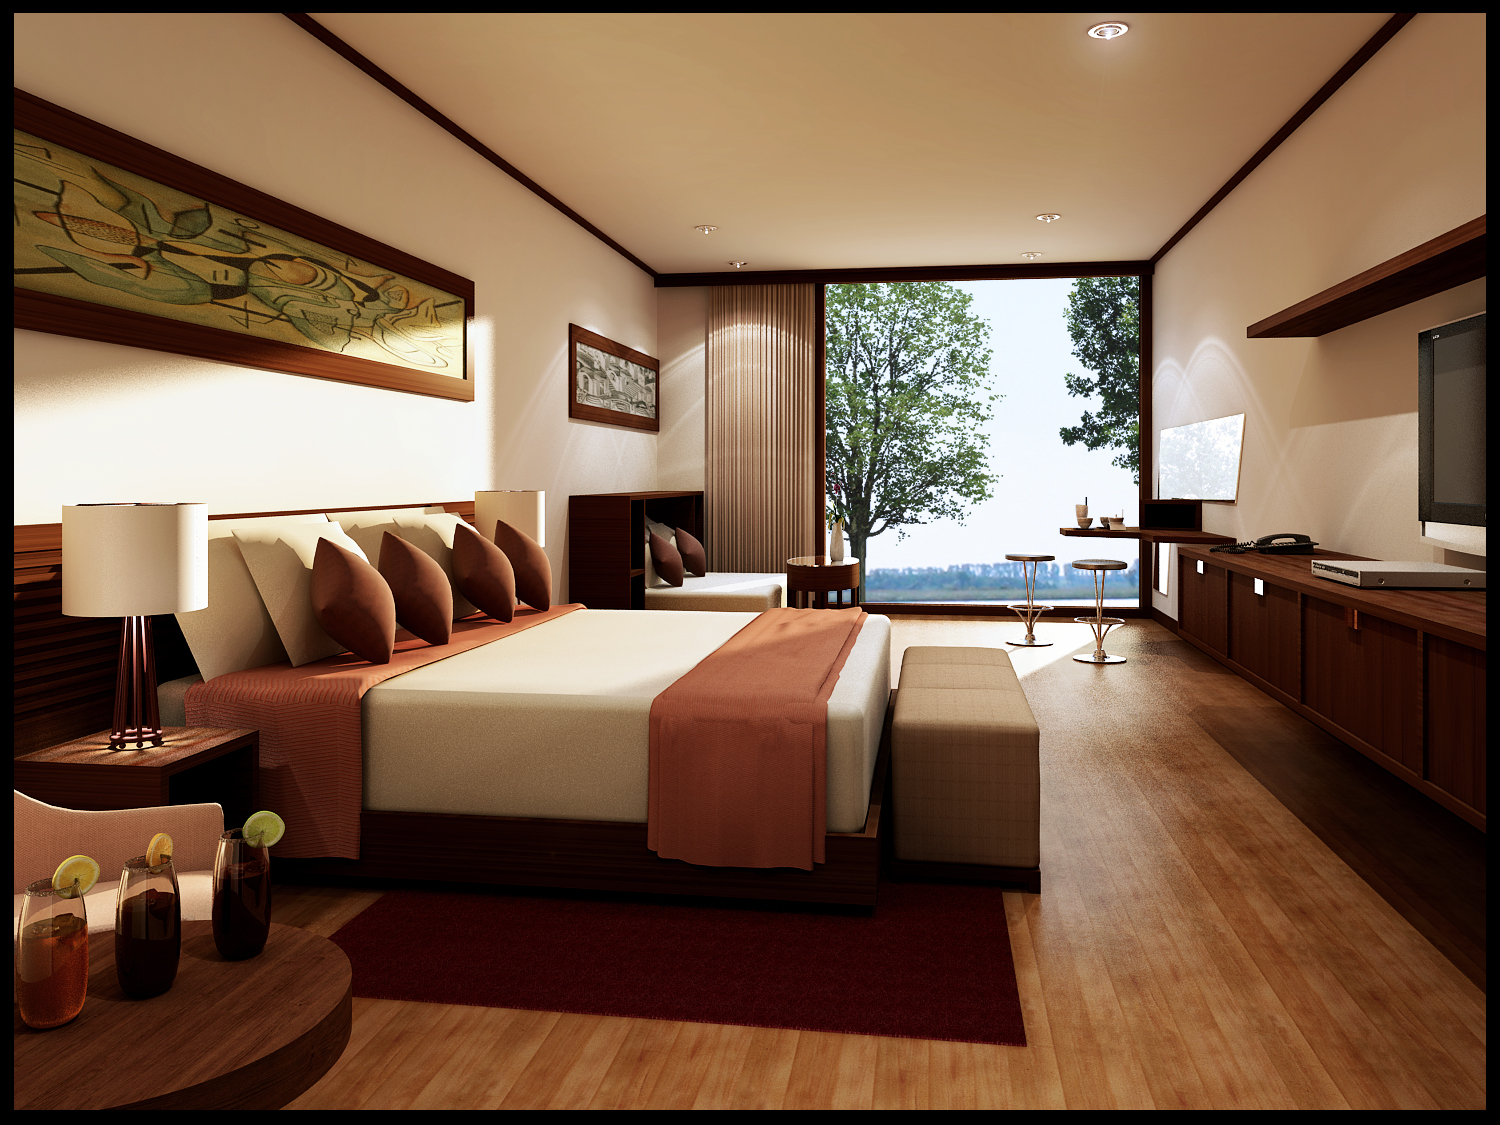 Vastu tips for your bedroom